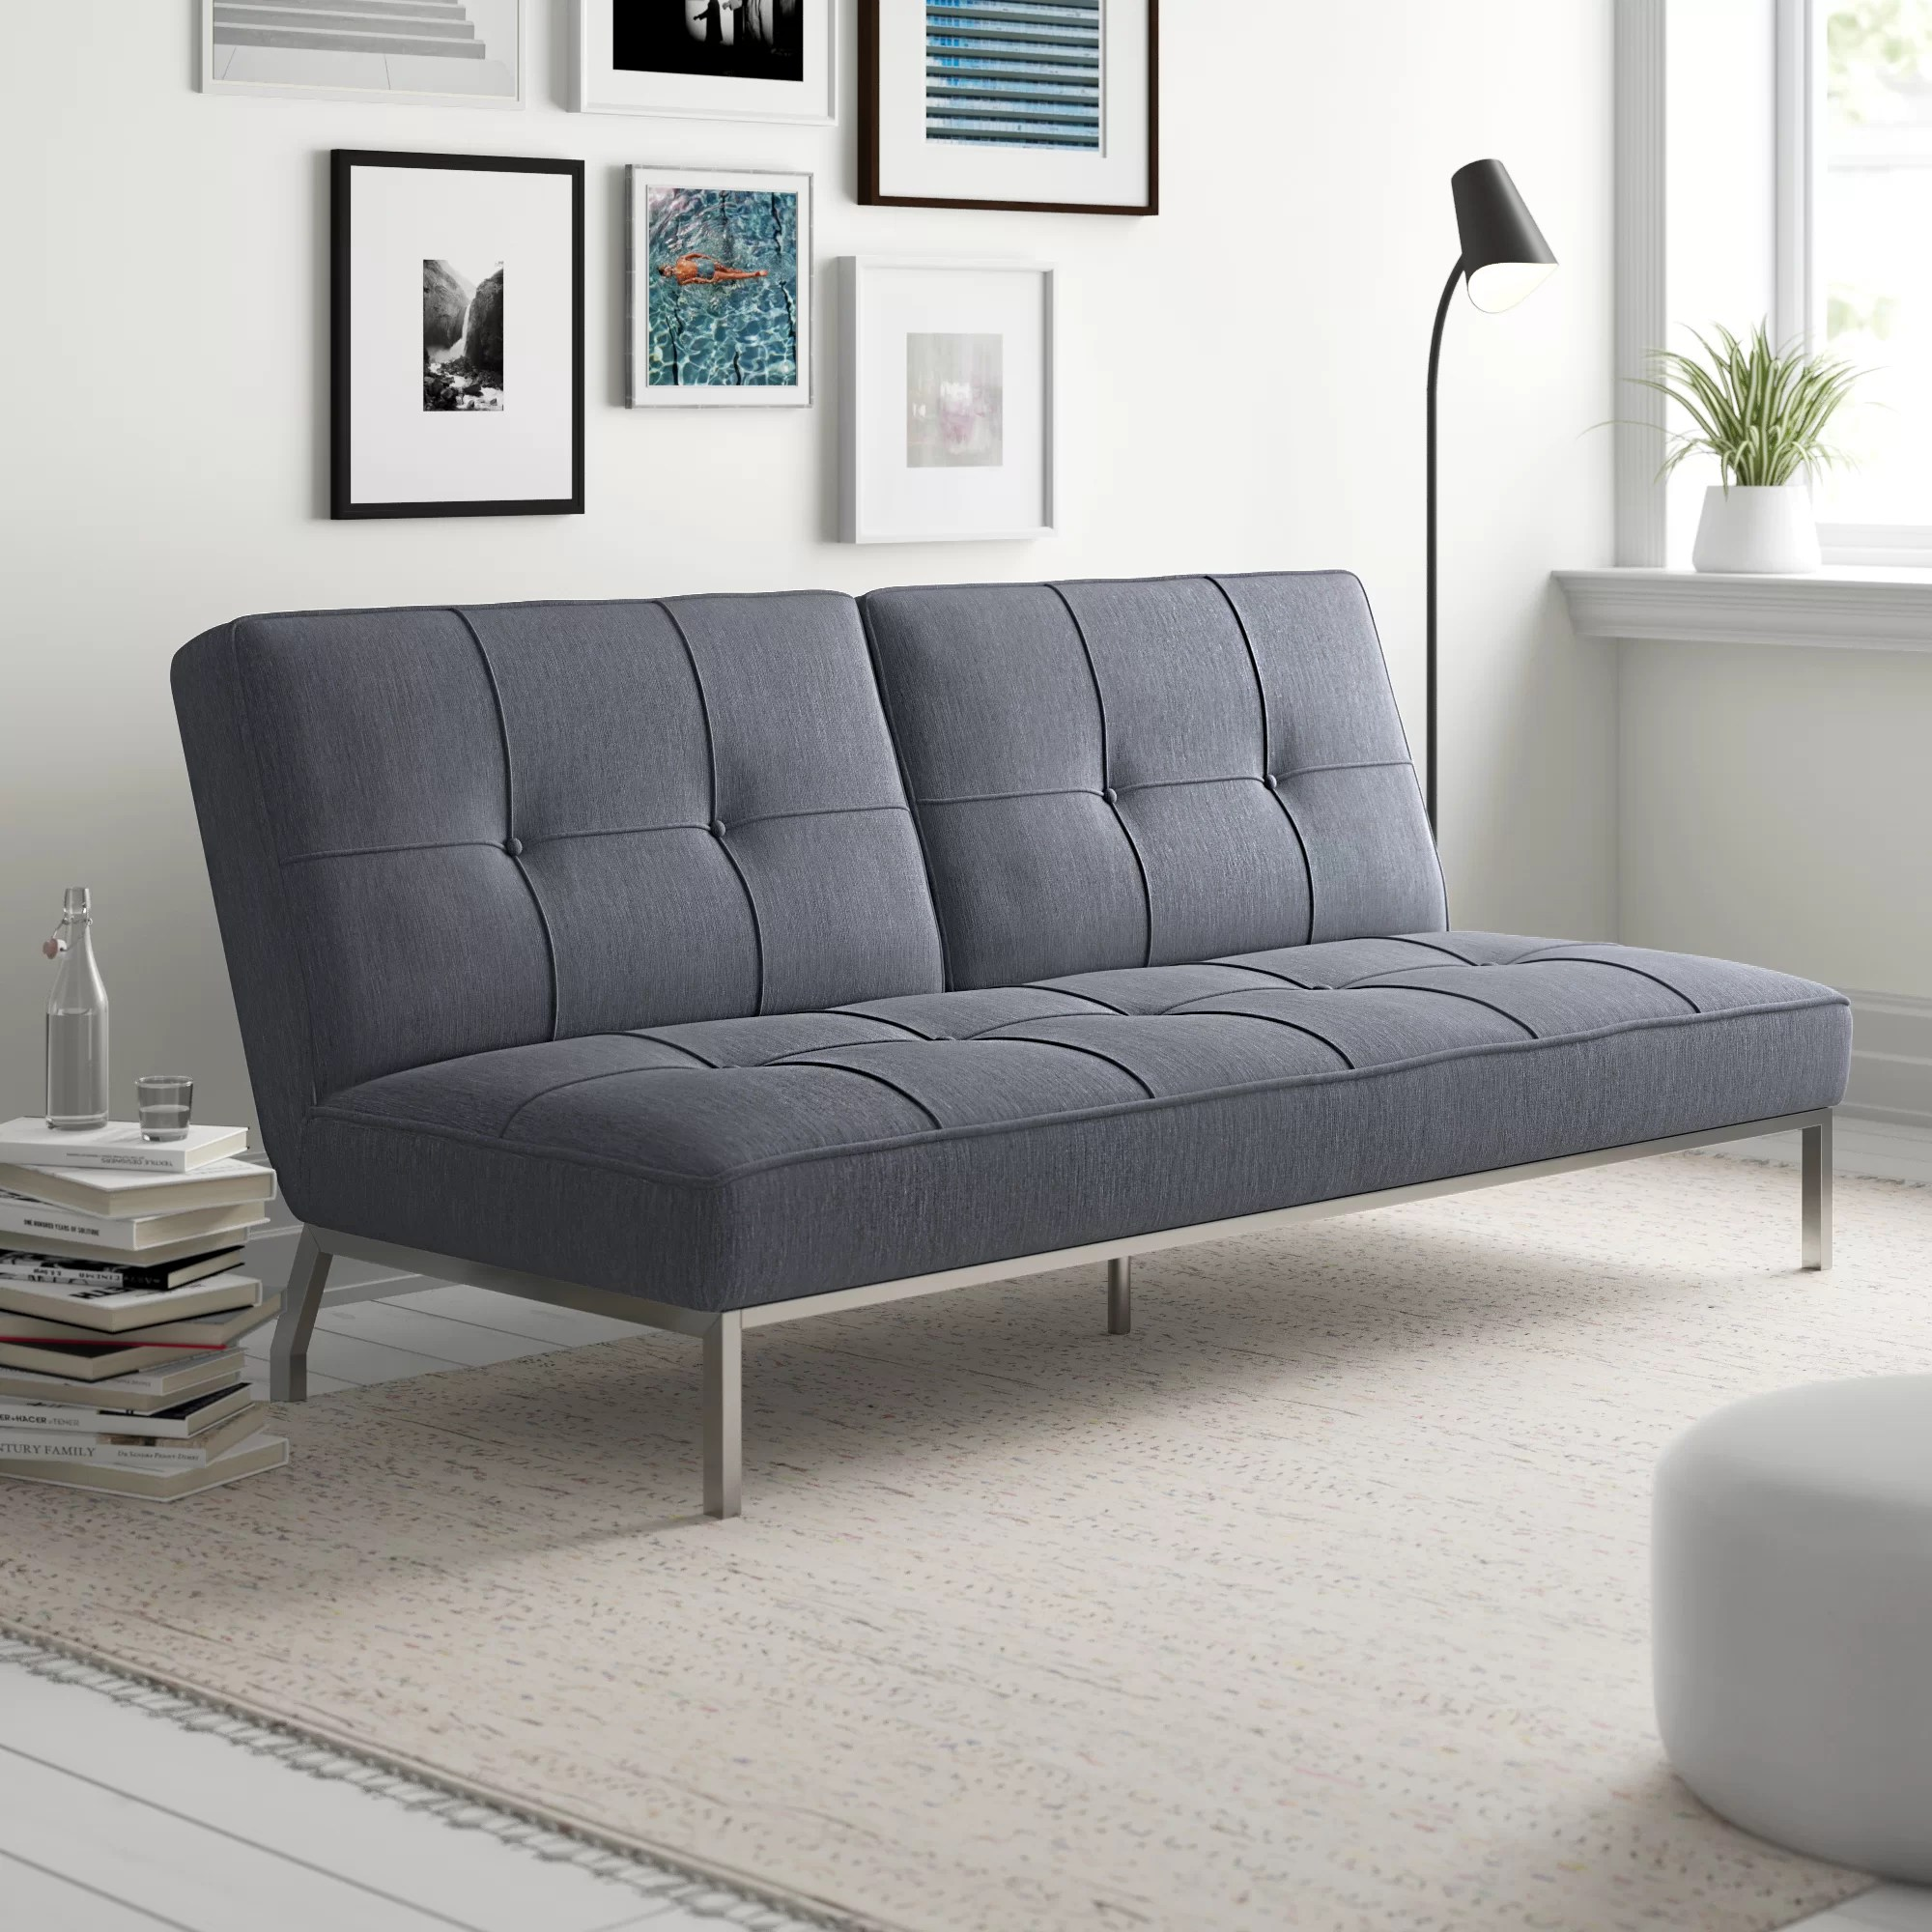 Metro Lane Schlafsofa Litchfield Bewertungen Wayfair De